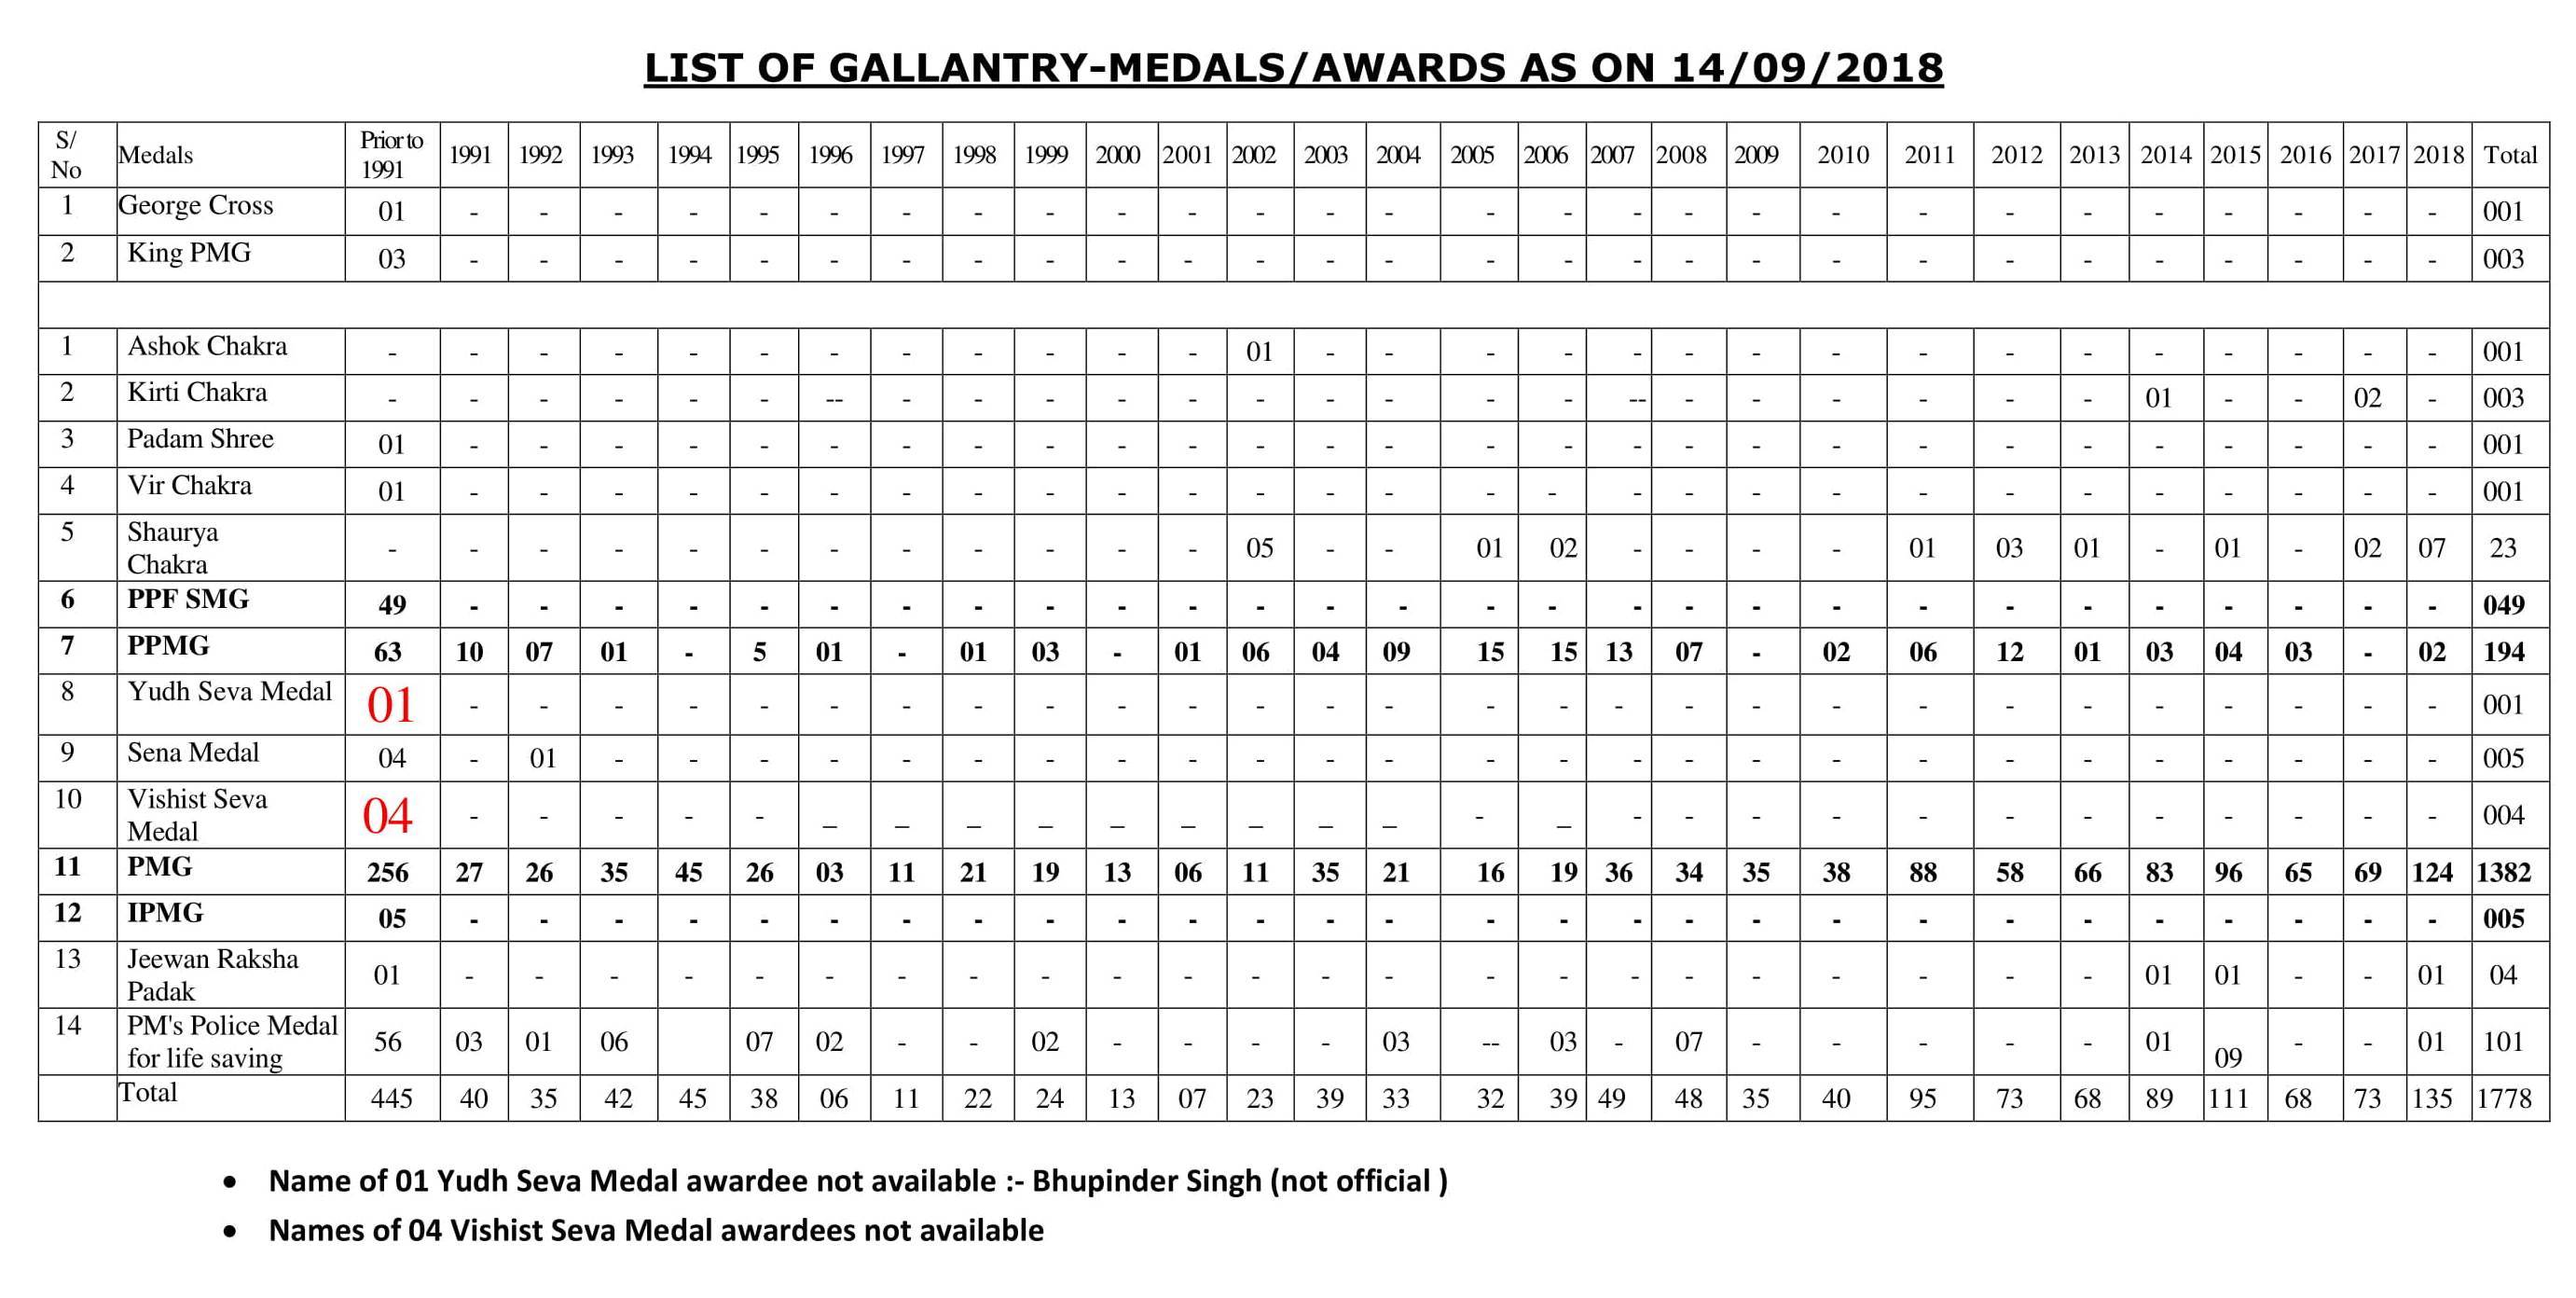 List of Gallantry - Medals / Awards as on 14/09/2018